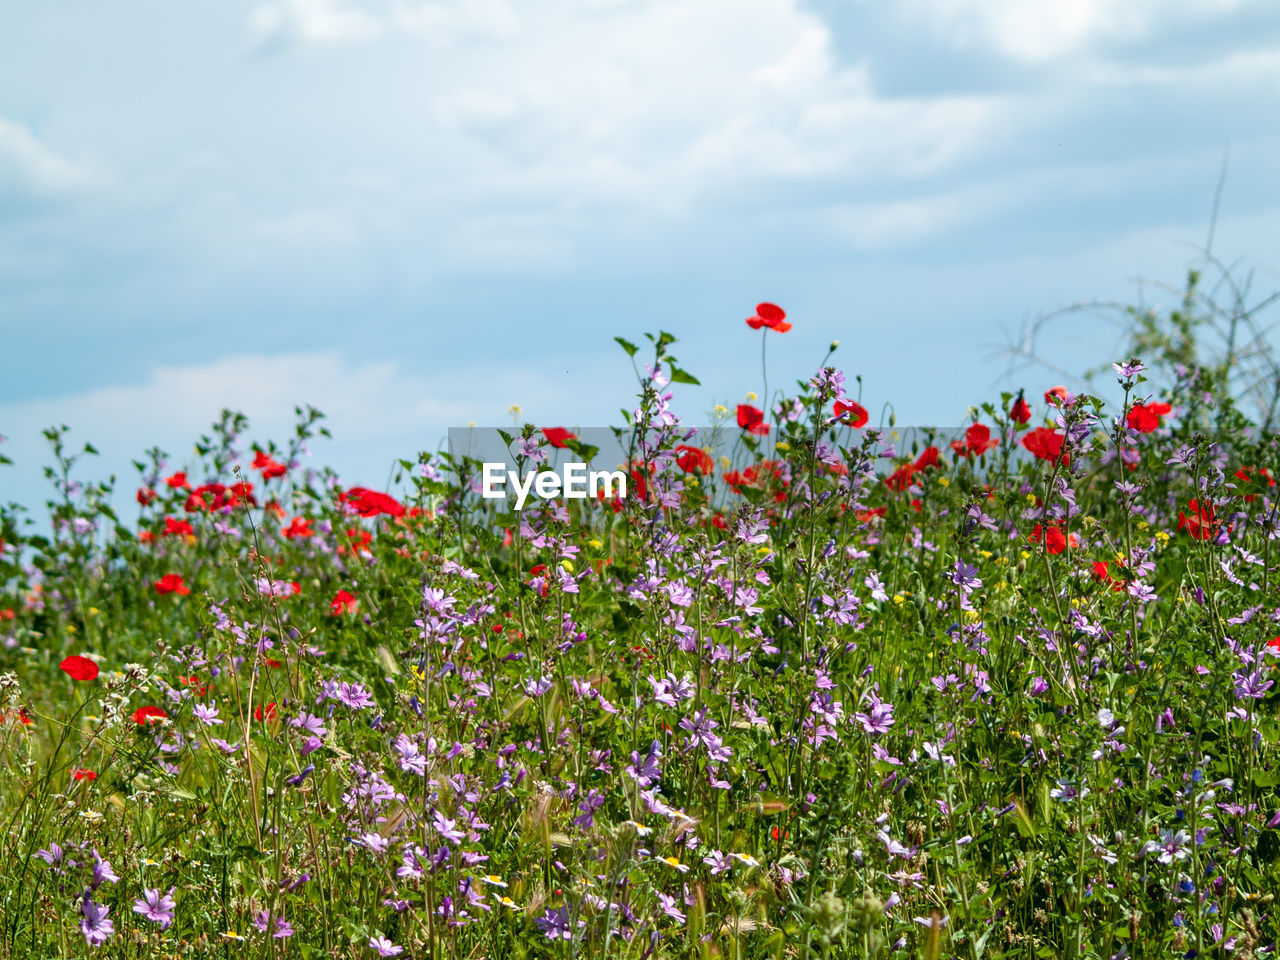 flower, flowering plant, plant, vulnerability, fragility, red, growth, freshness, beauty in nature, land, sky, cloud - sky, nature, field, petal, day, poppy, flower head, no people, inflorescence, flowerbed